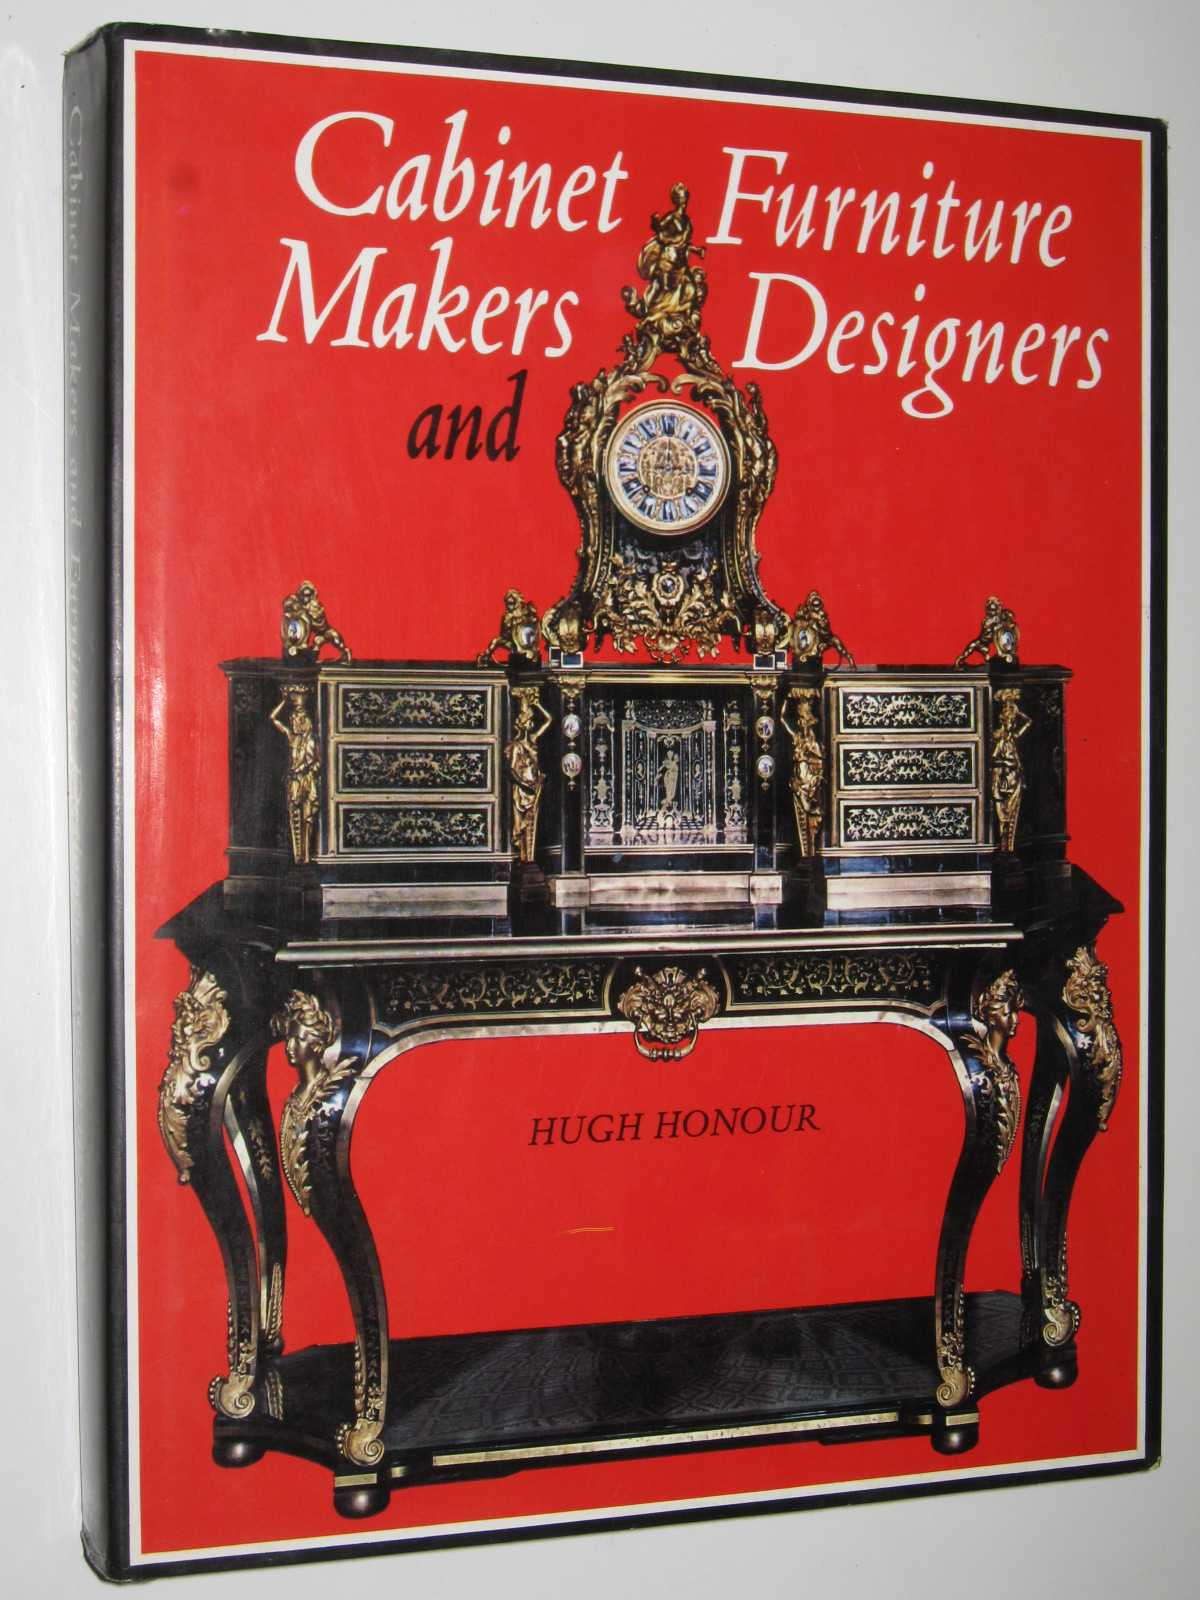 Image for Cabinet Makers and Furniture Designers